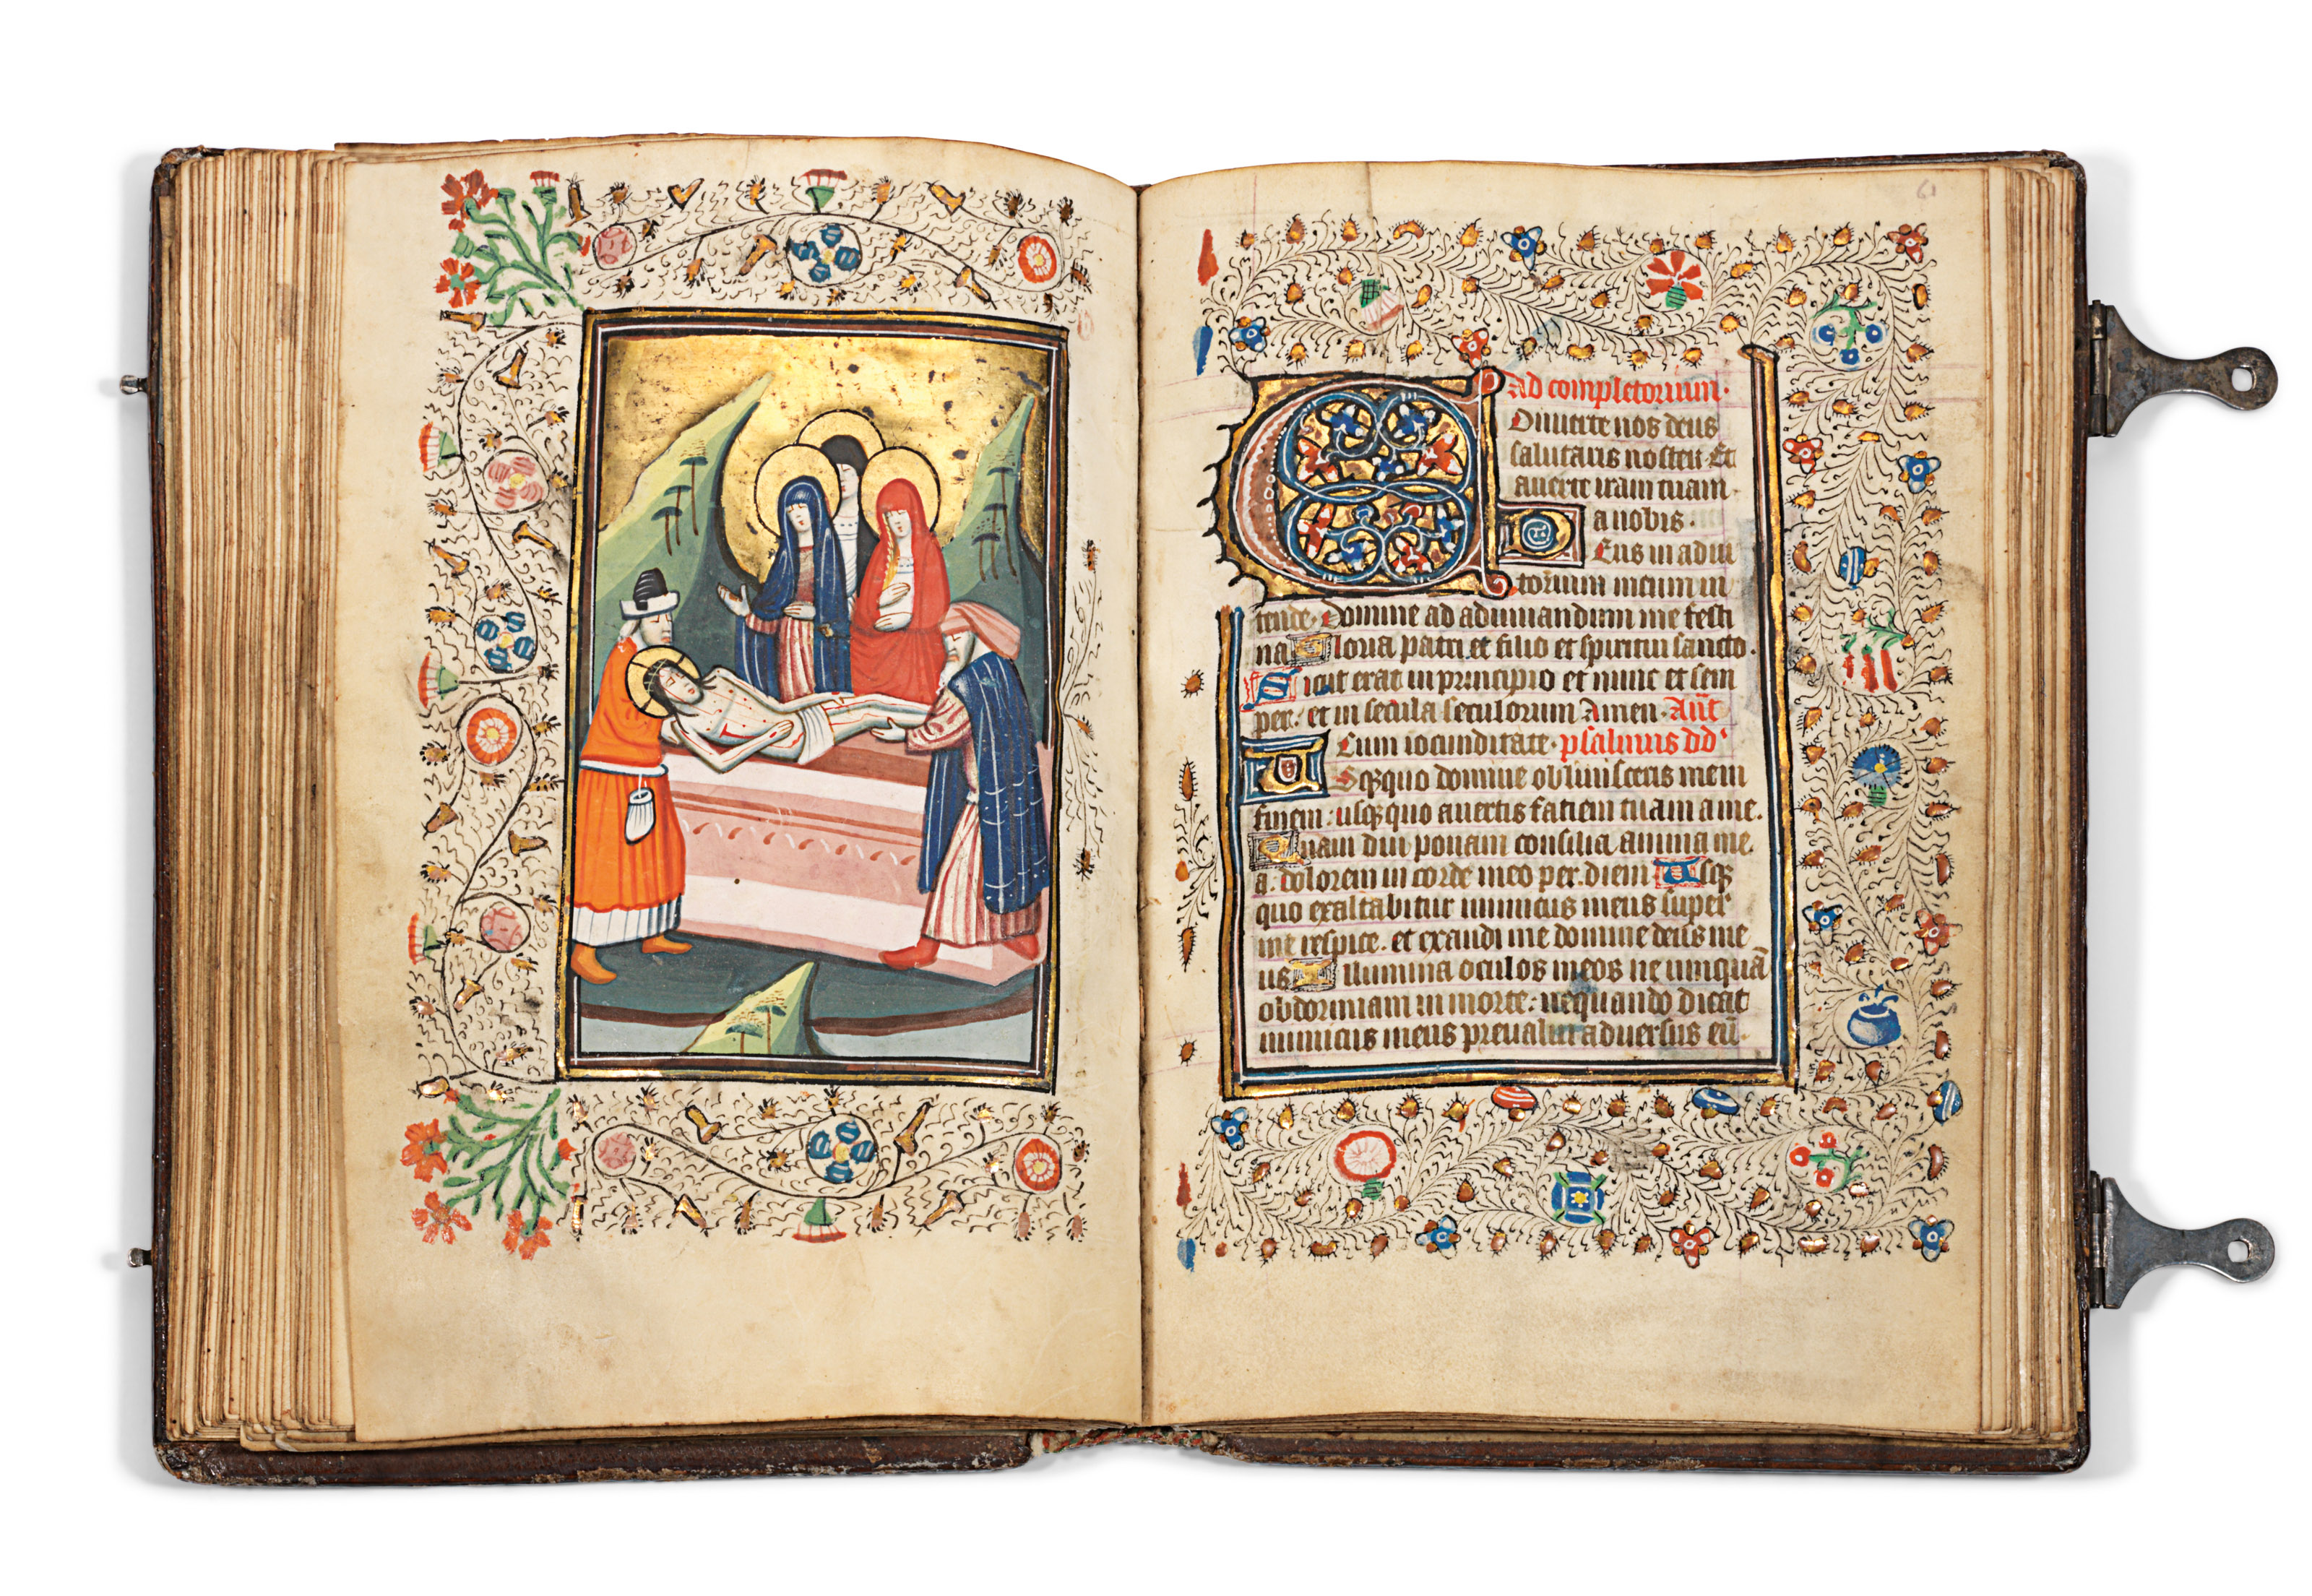 BOOK OF HOURS, use of Toul, in